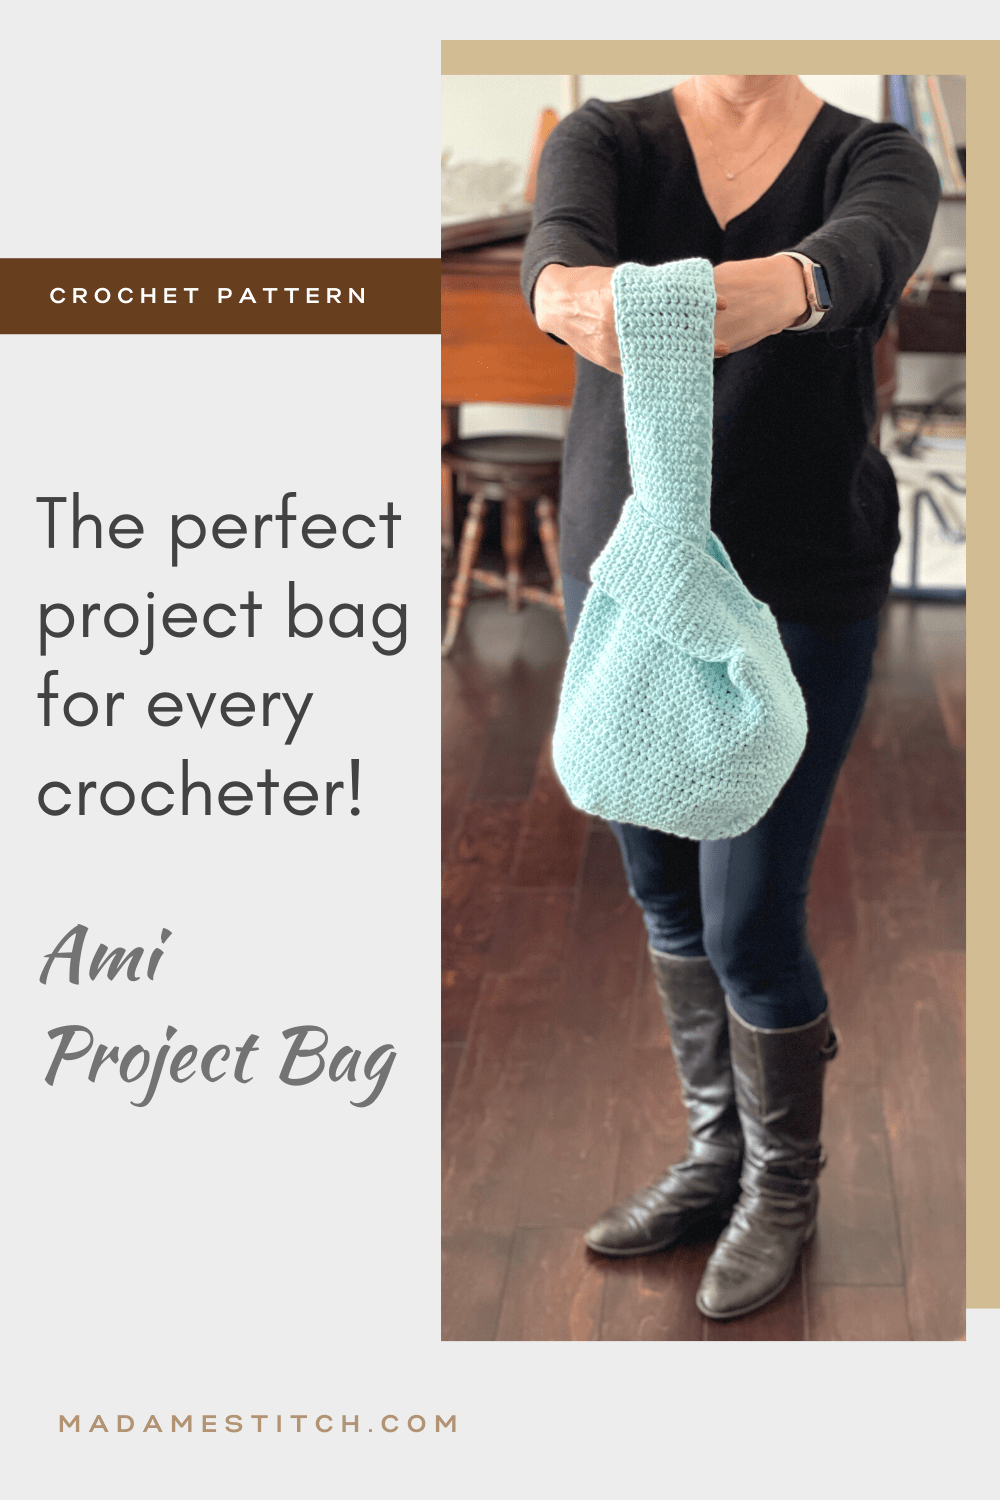 A picture of the Ami project bag being held